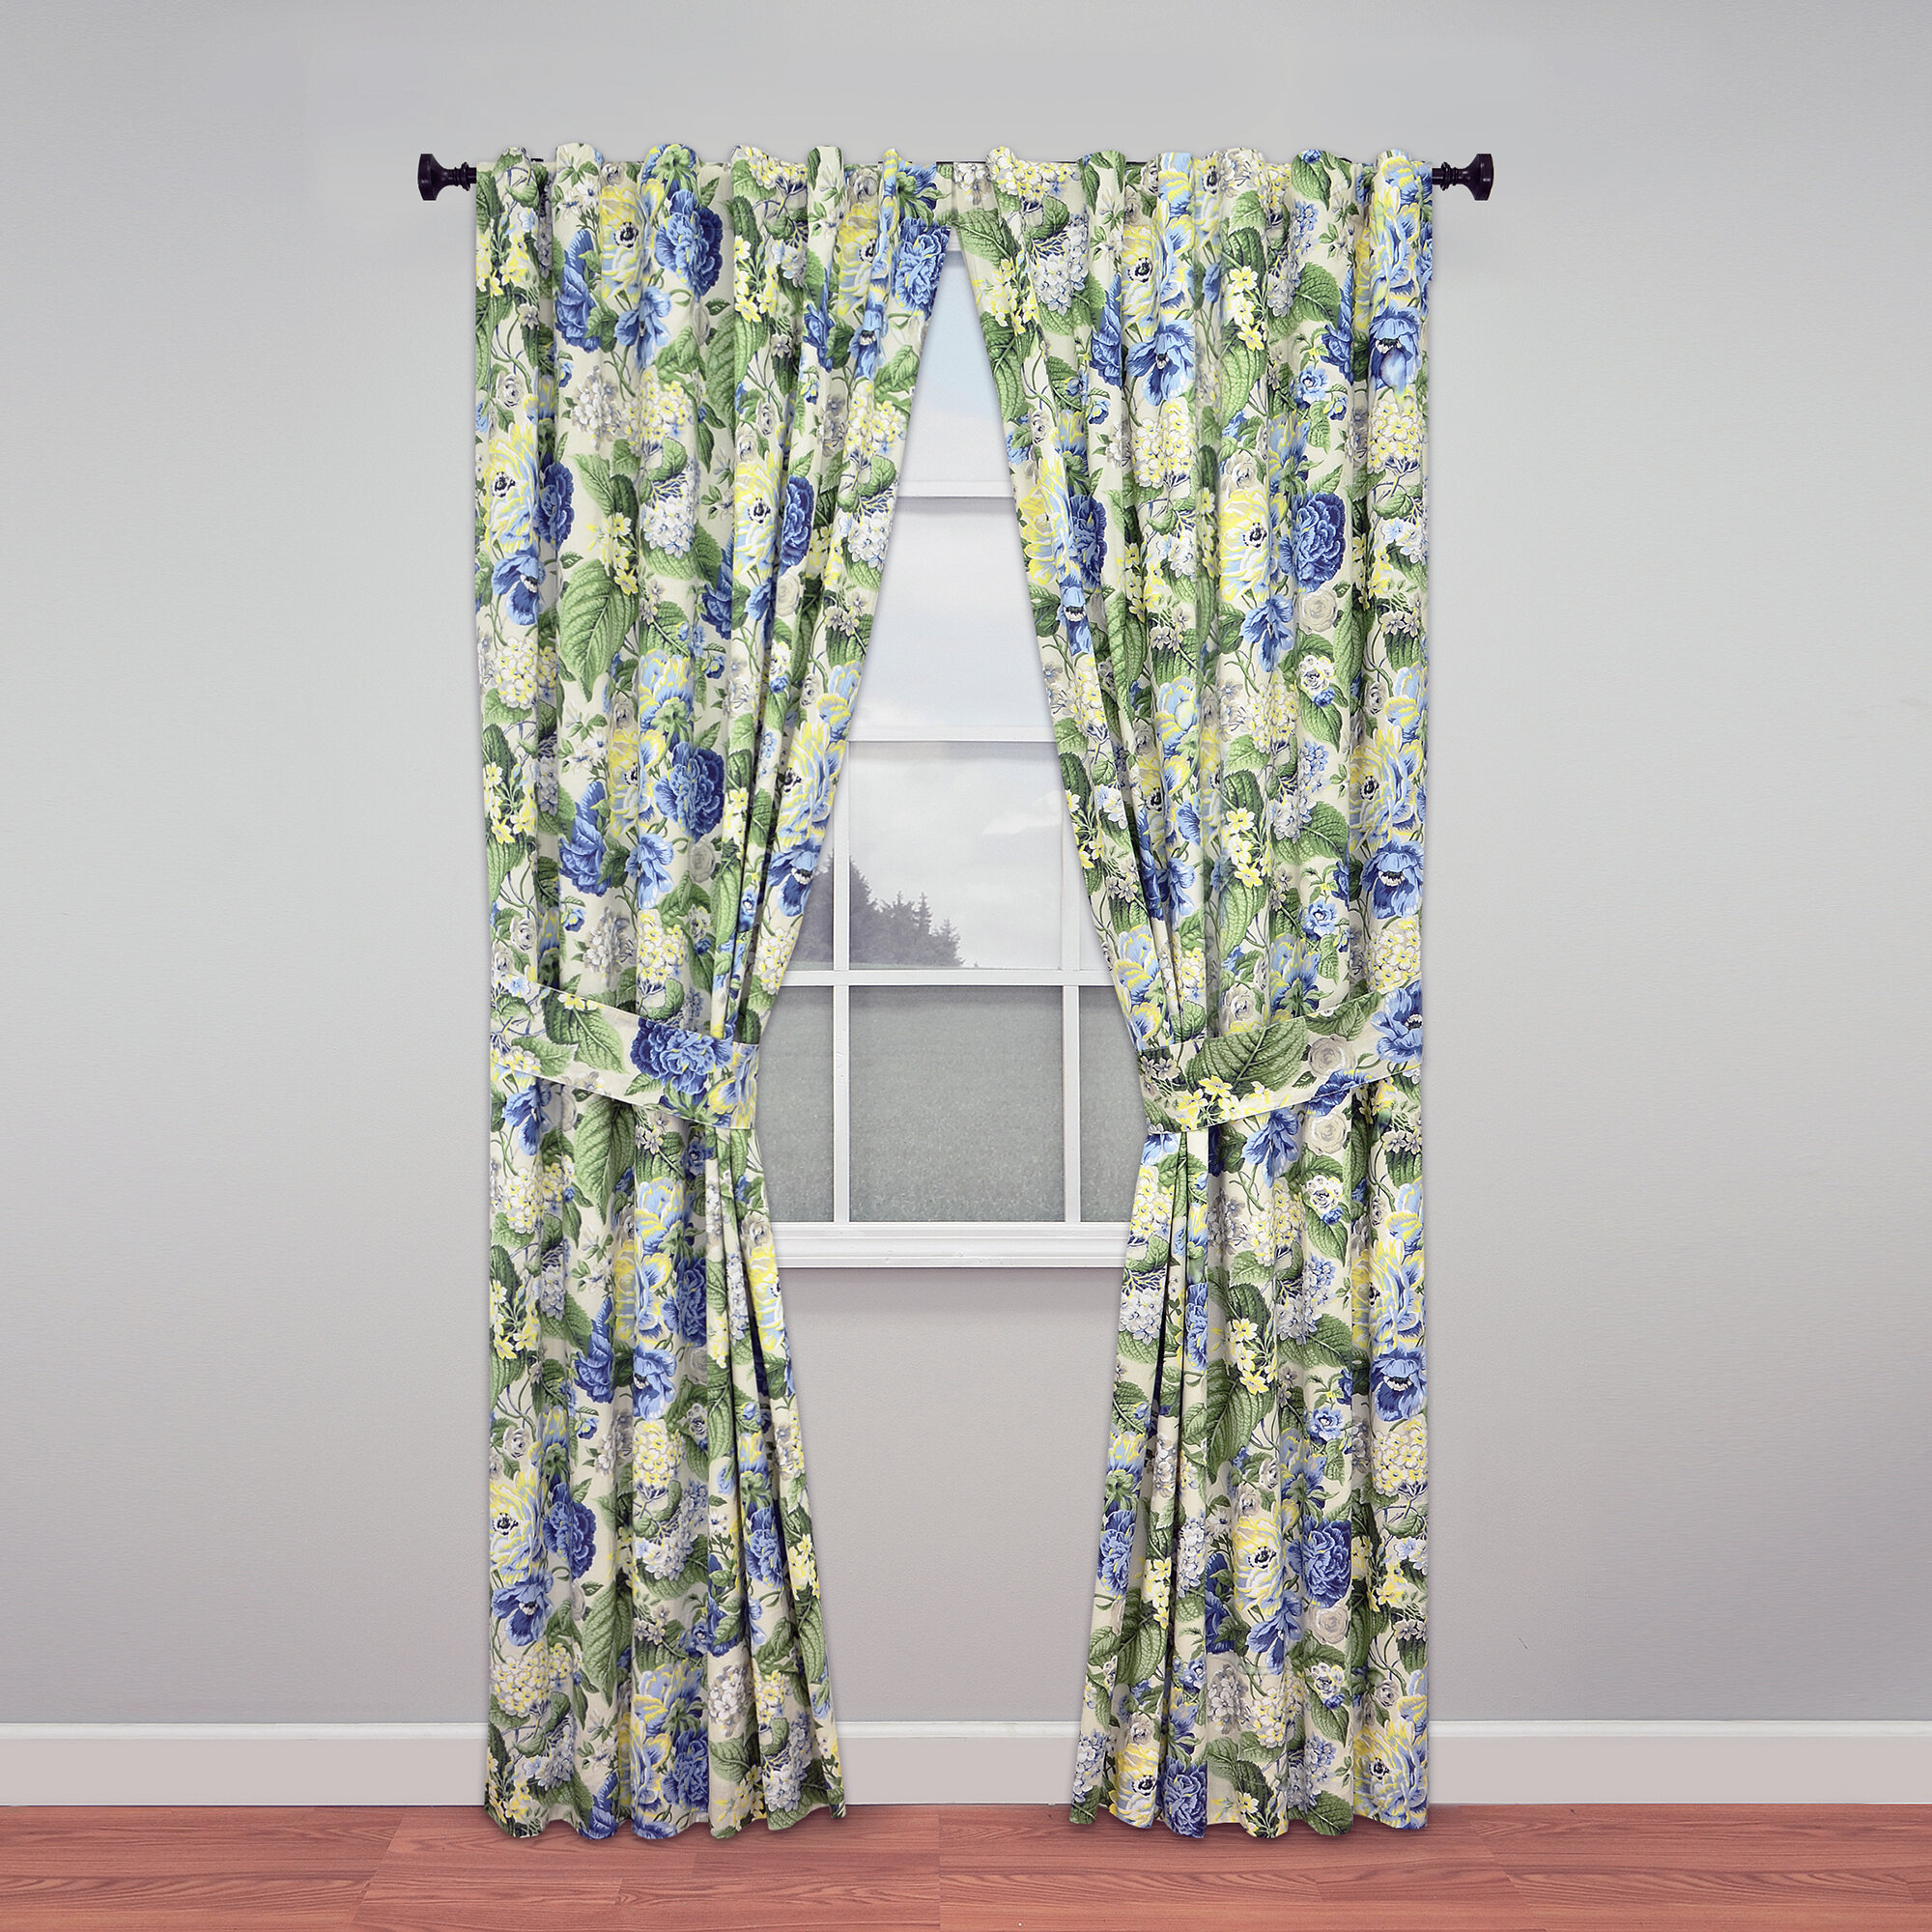 pocket your interior get bon for house intended rod curtain panel latte shop marvelous inch inspiration curtains decor rods